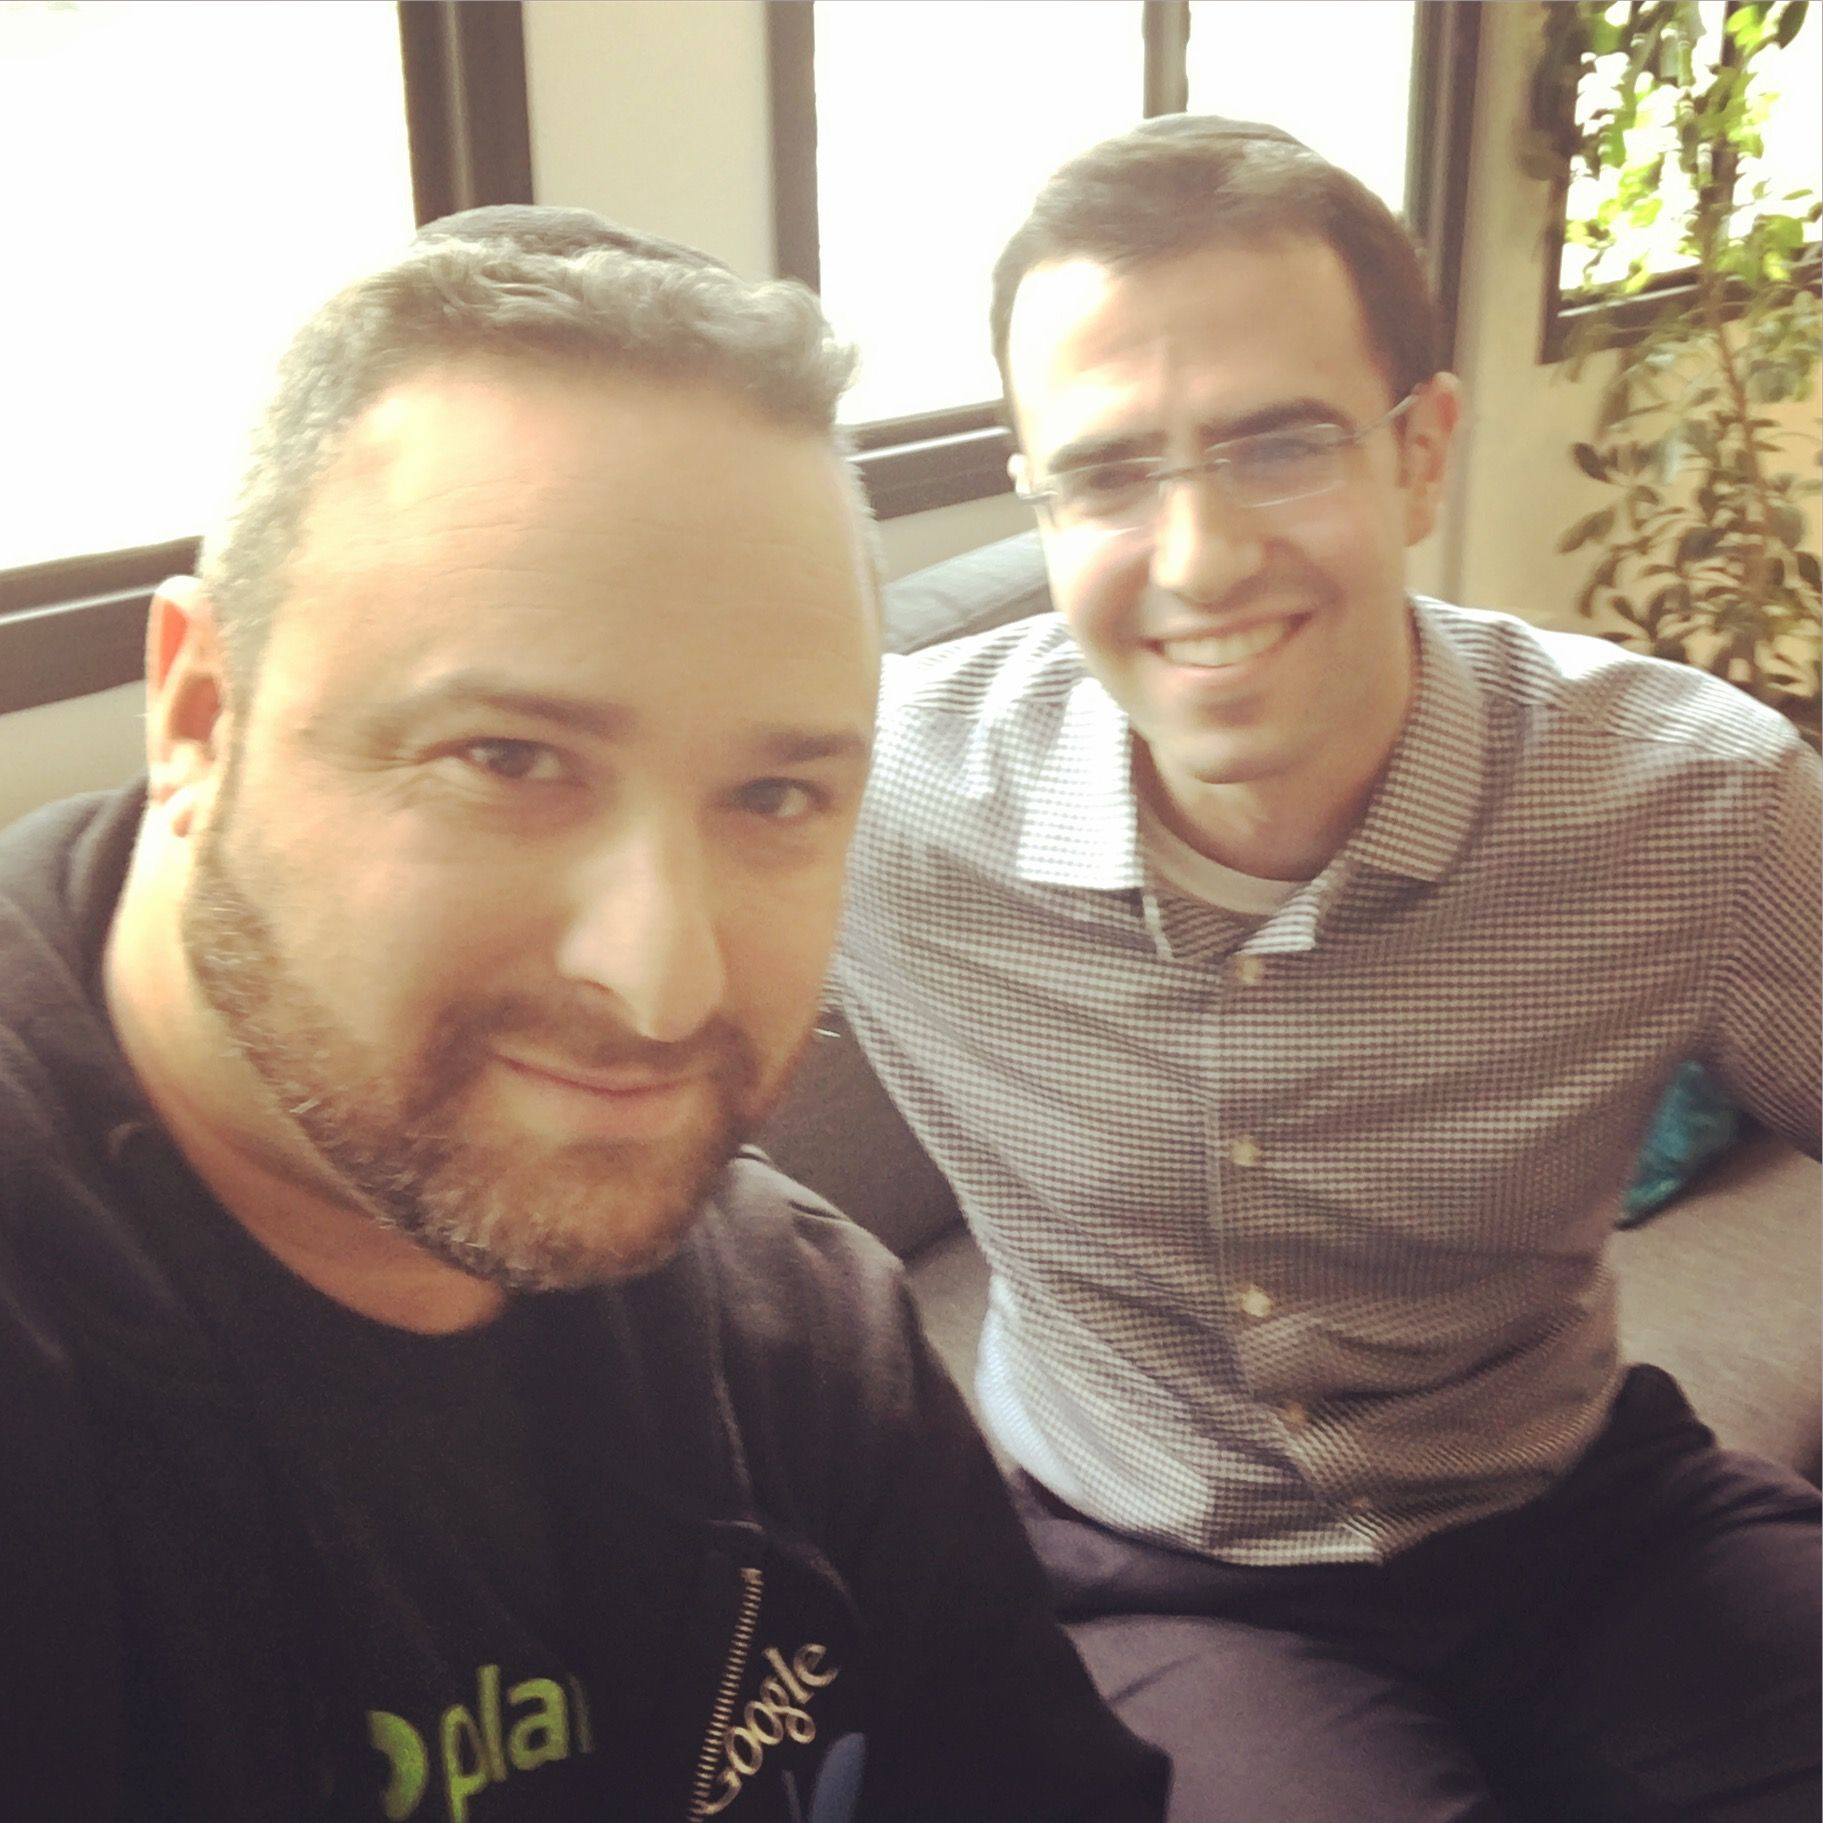 Alon amar analyst at carmel ventures young